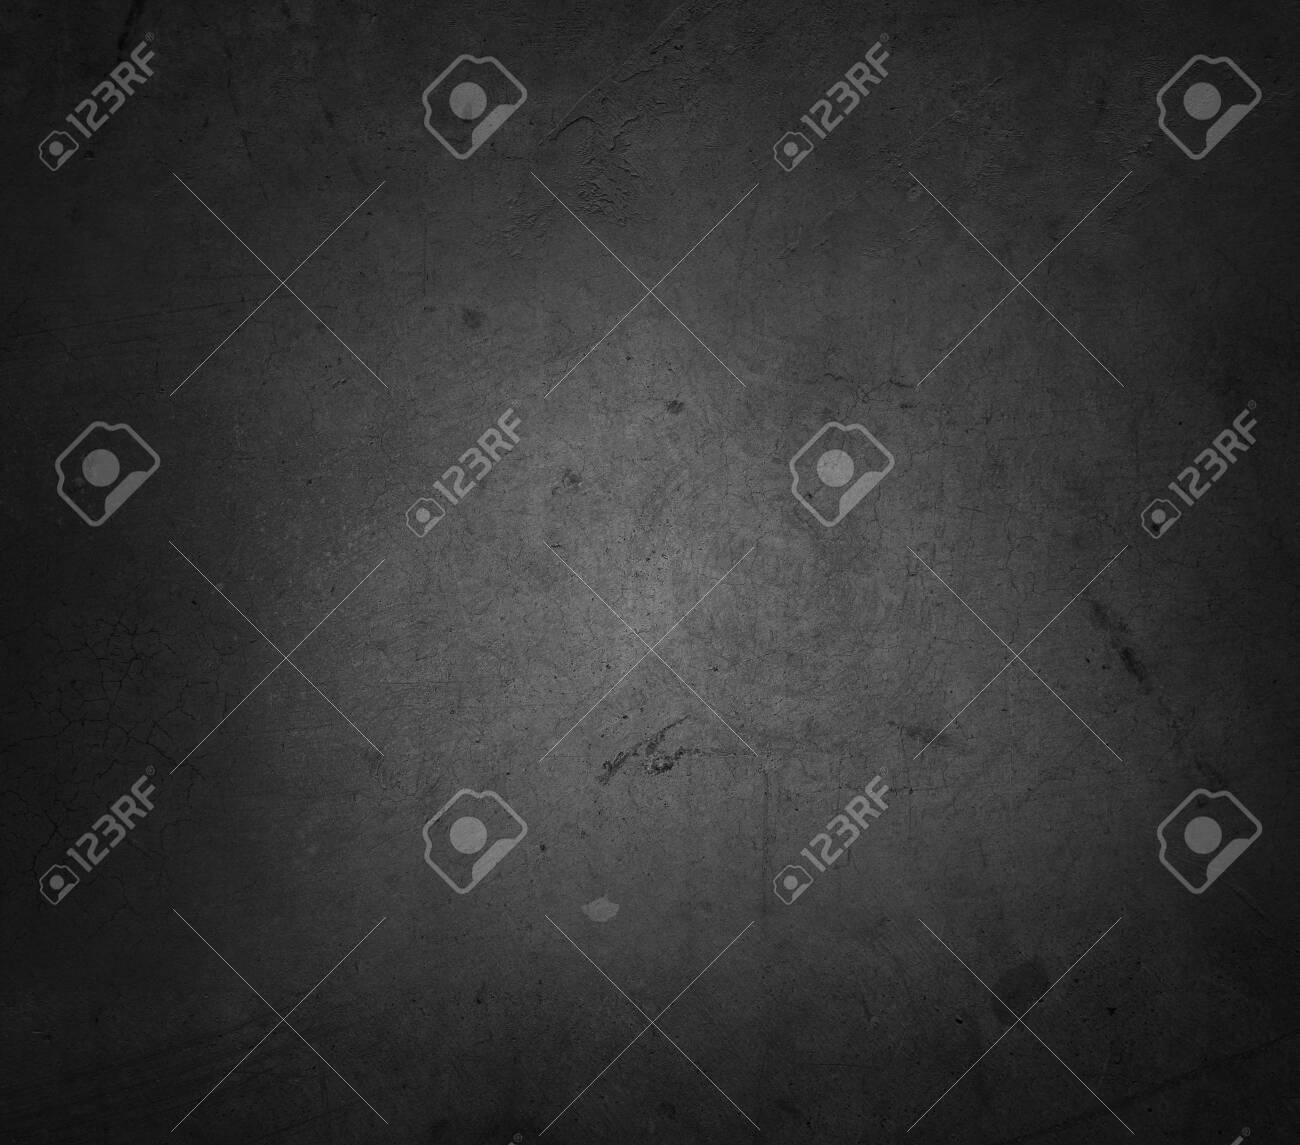 Close-up of grey textured background - 144946891